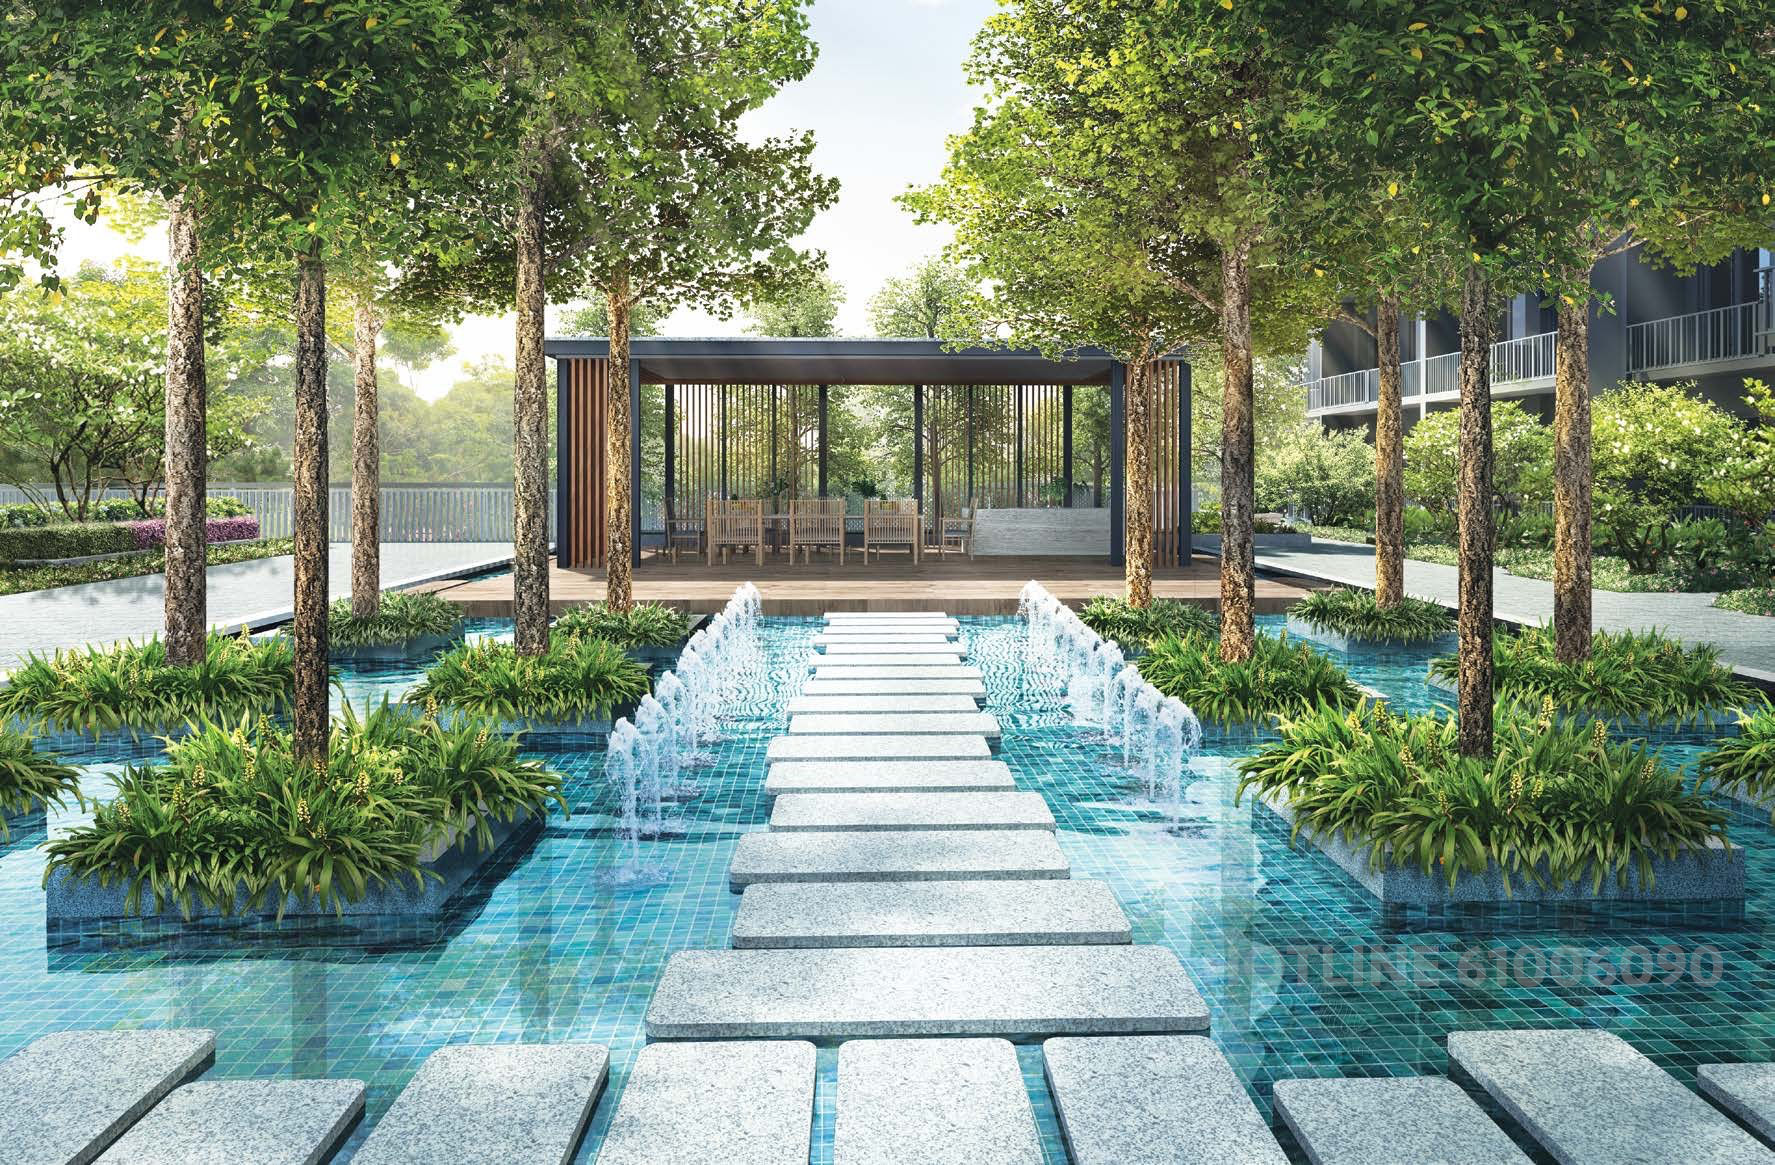 The Parc Botannia Development by Sing Holdings